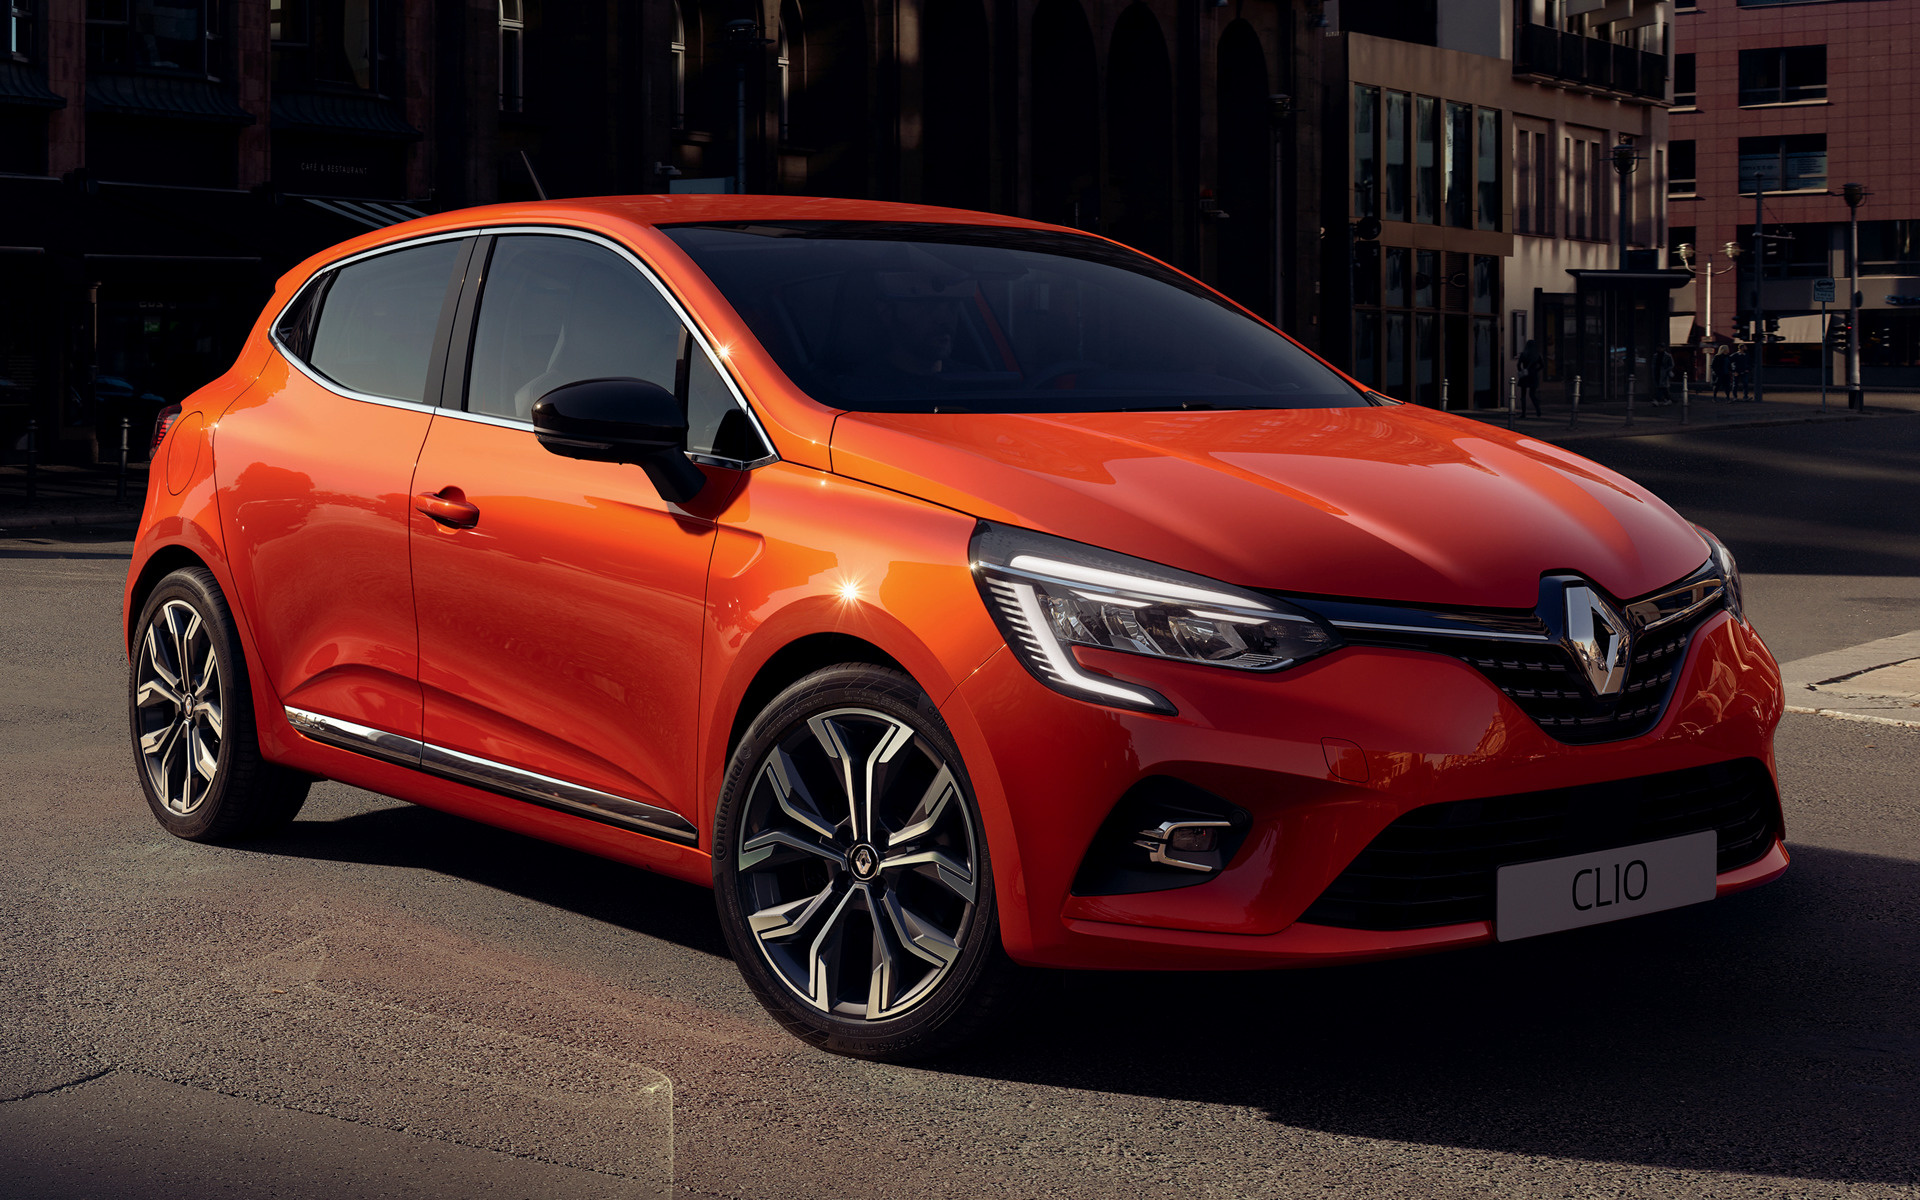 2019 Renault Clio - Wallpapers and HD Images | Car Pixel